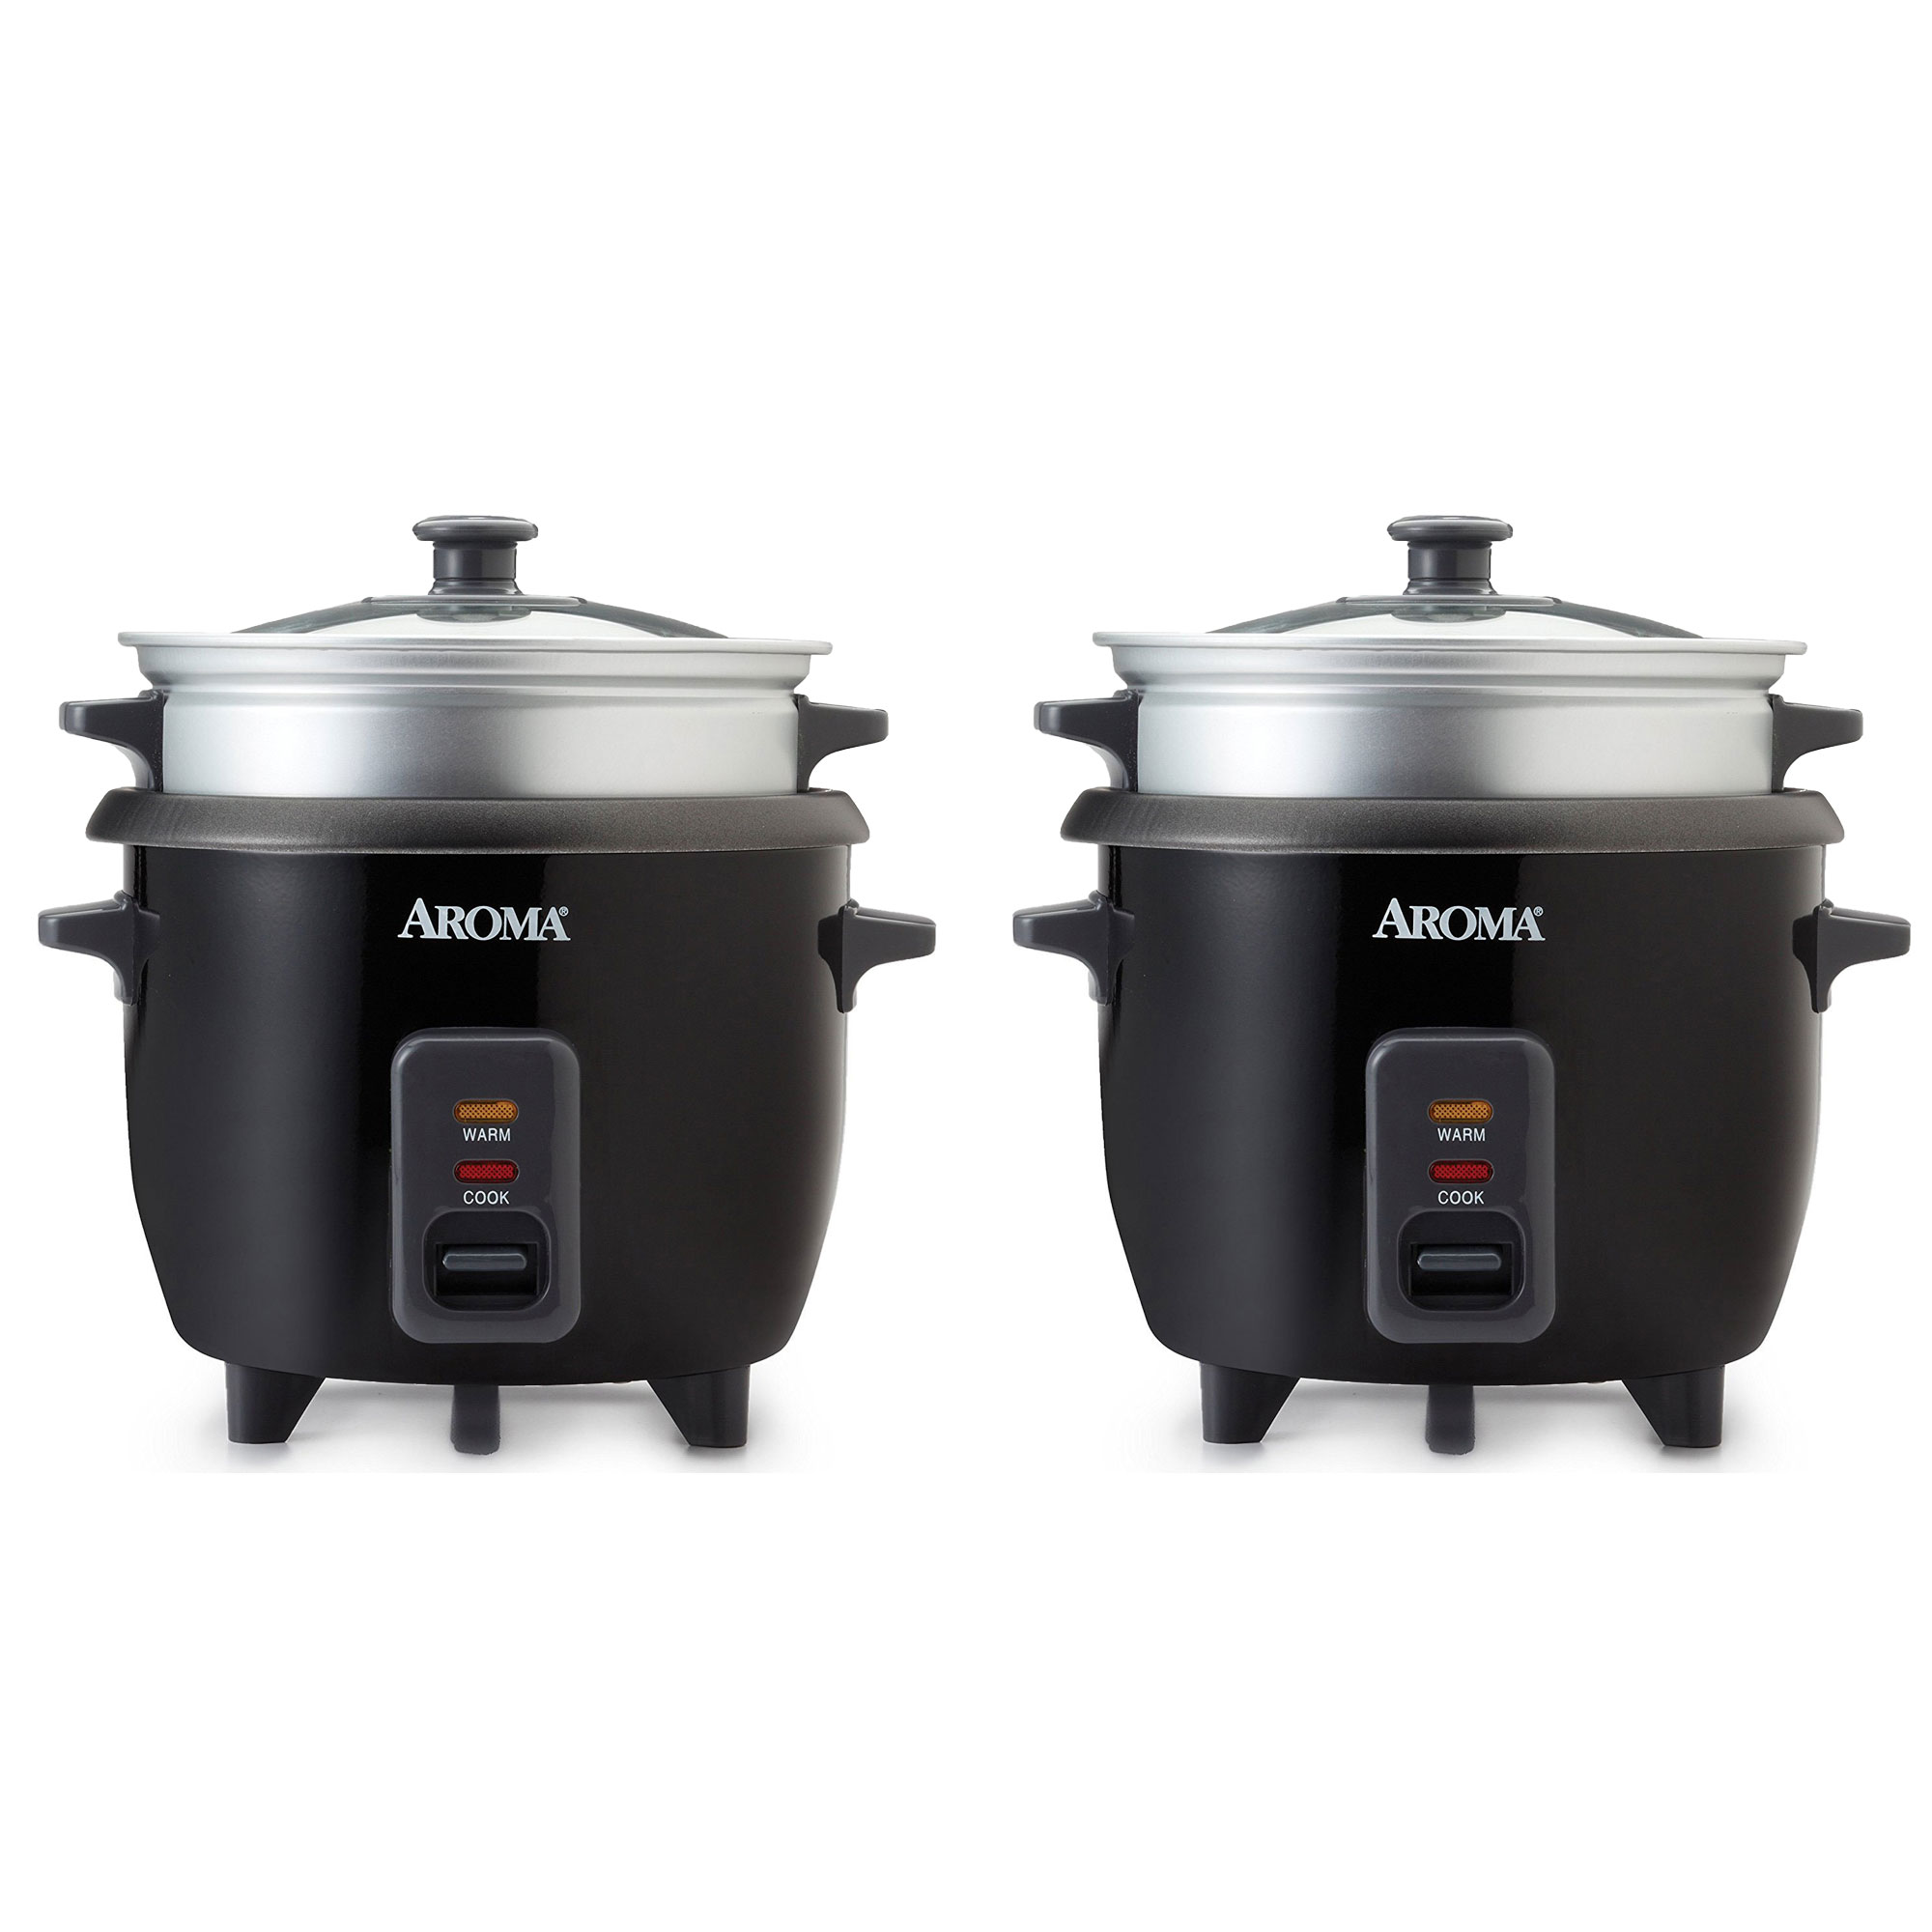 851c1fbbf8 Aroma 6 Cup Cooked White Pot Style Rice Cooker and Food Steamer ...